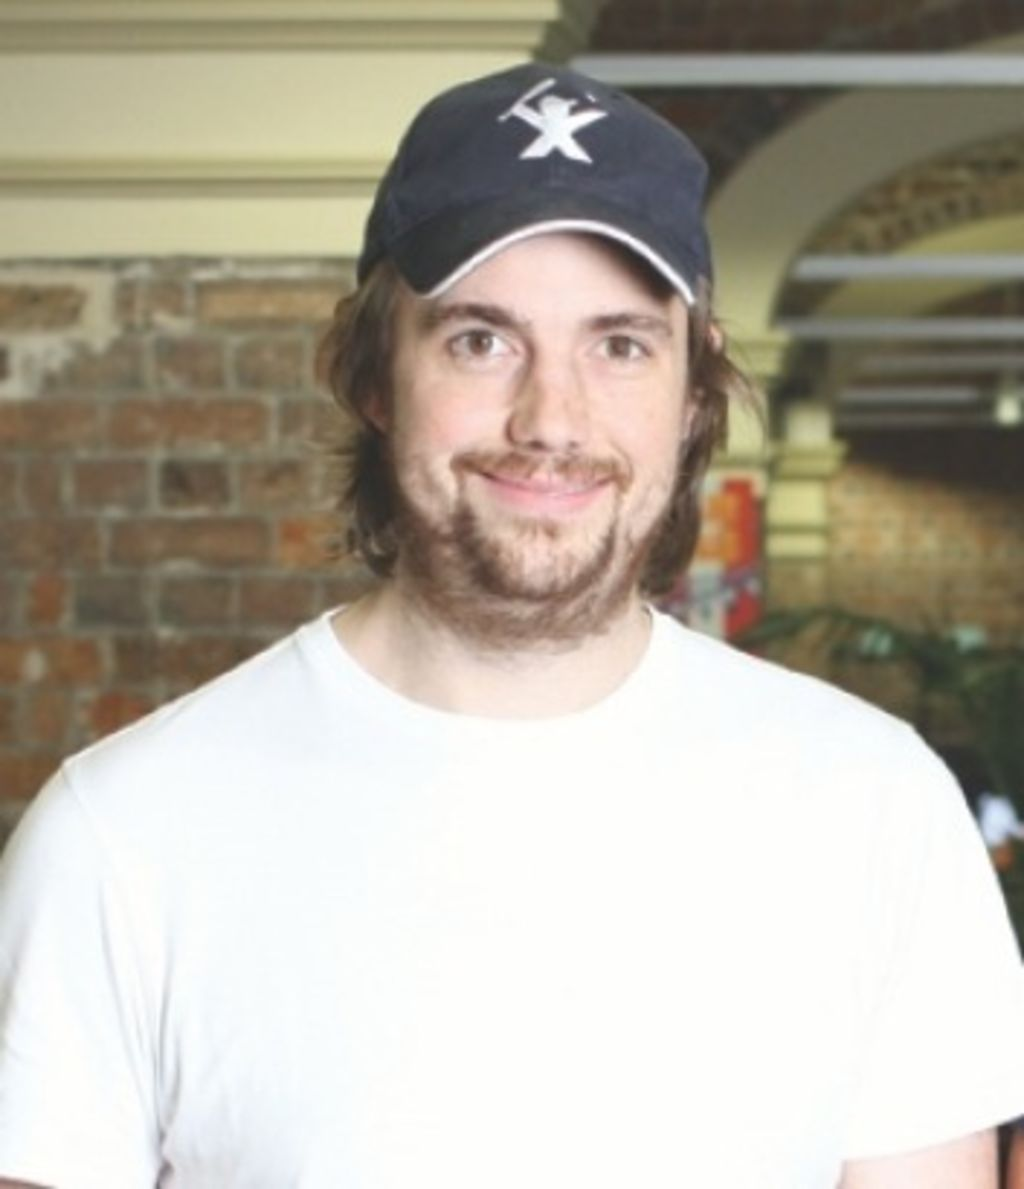 Atlassian's Mike Cannon-Brookes.